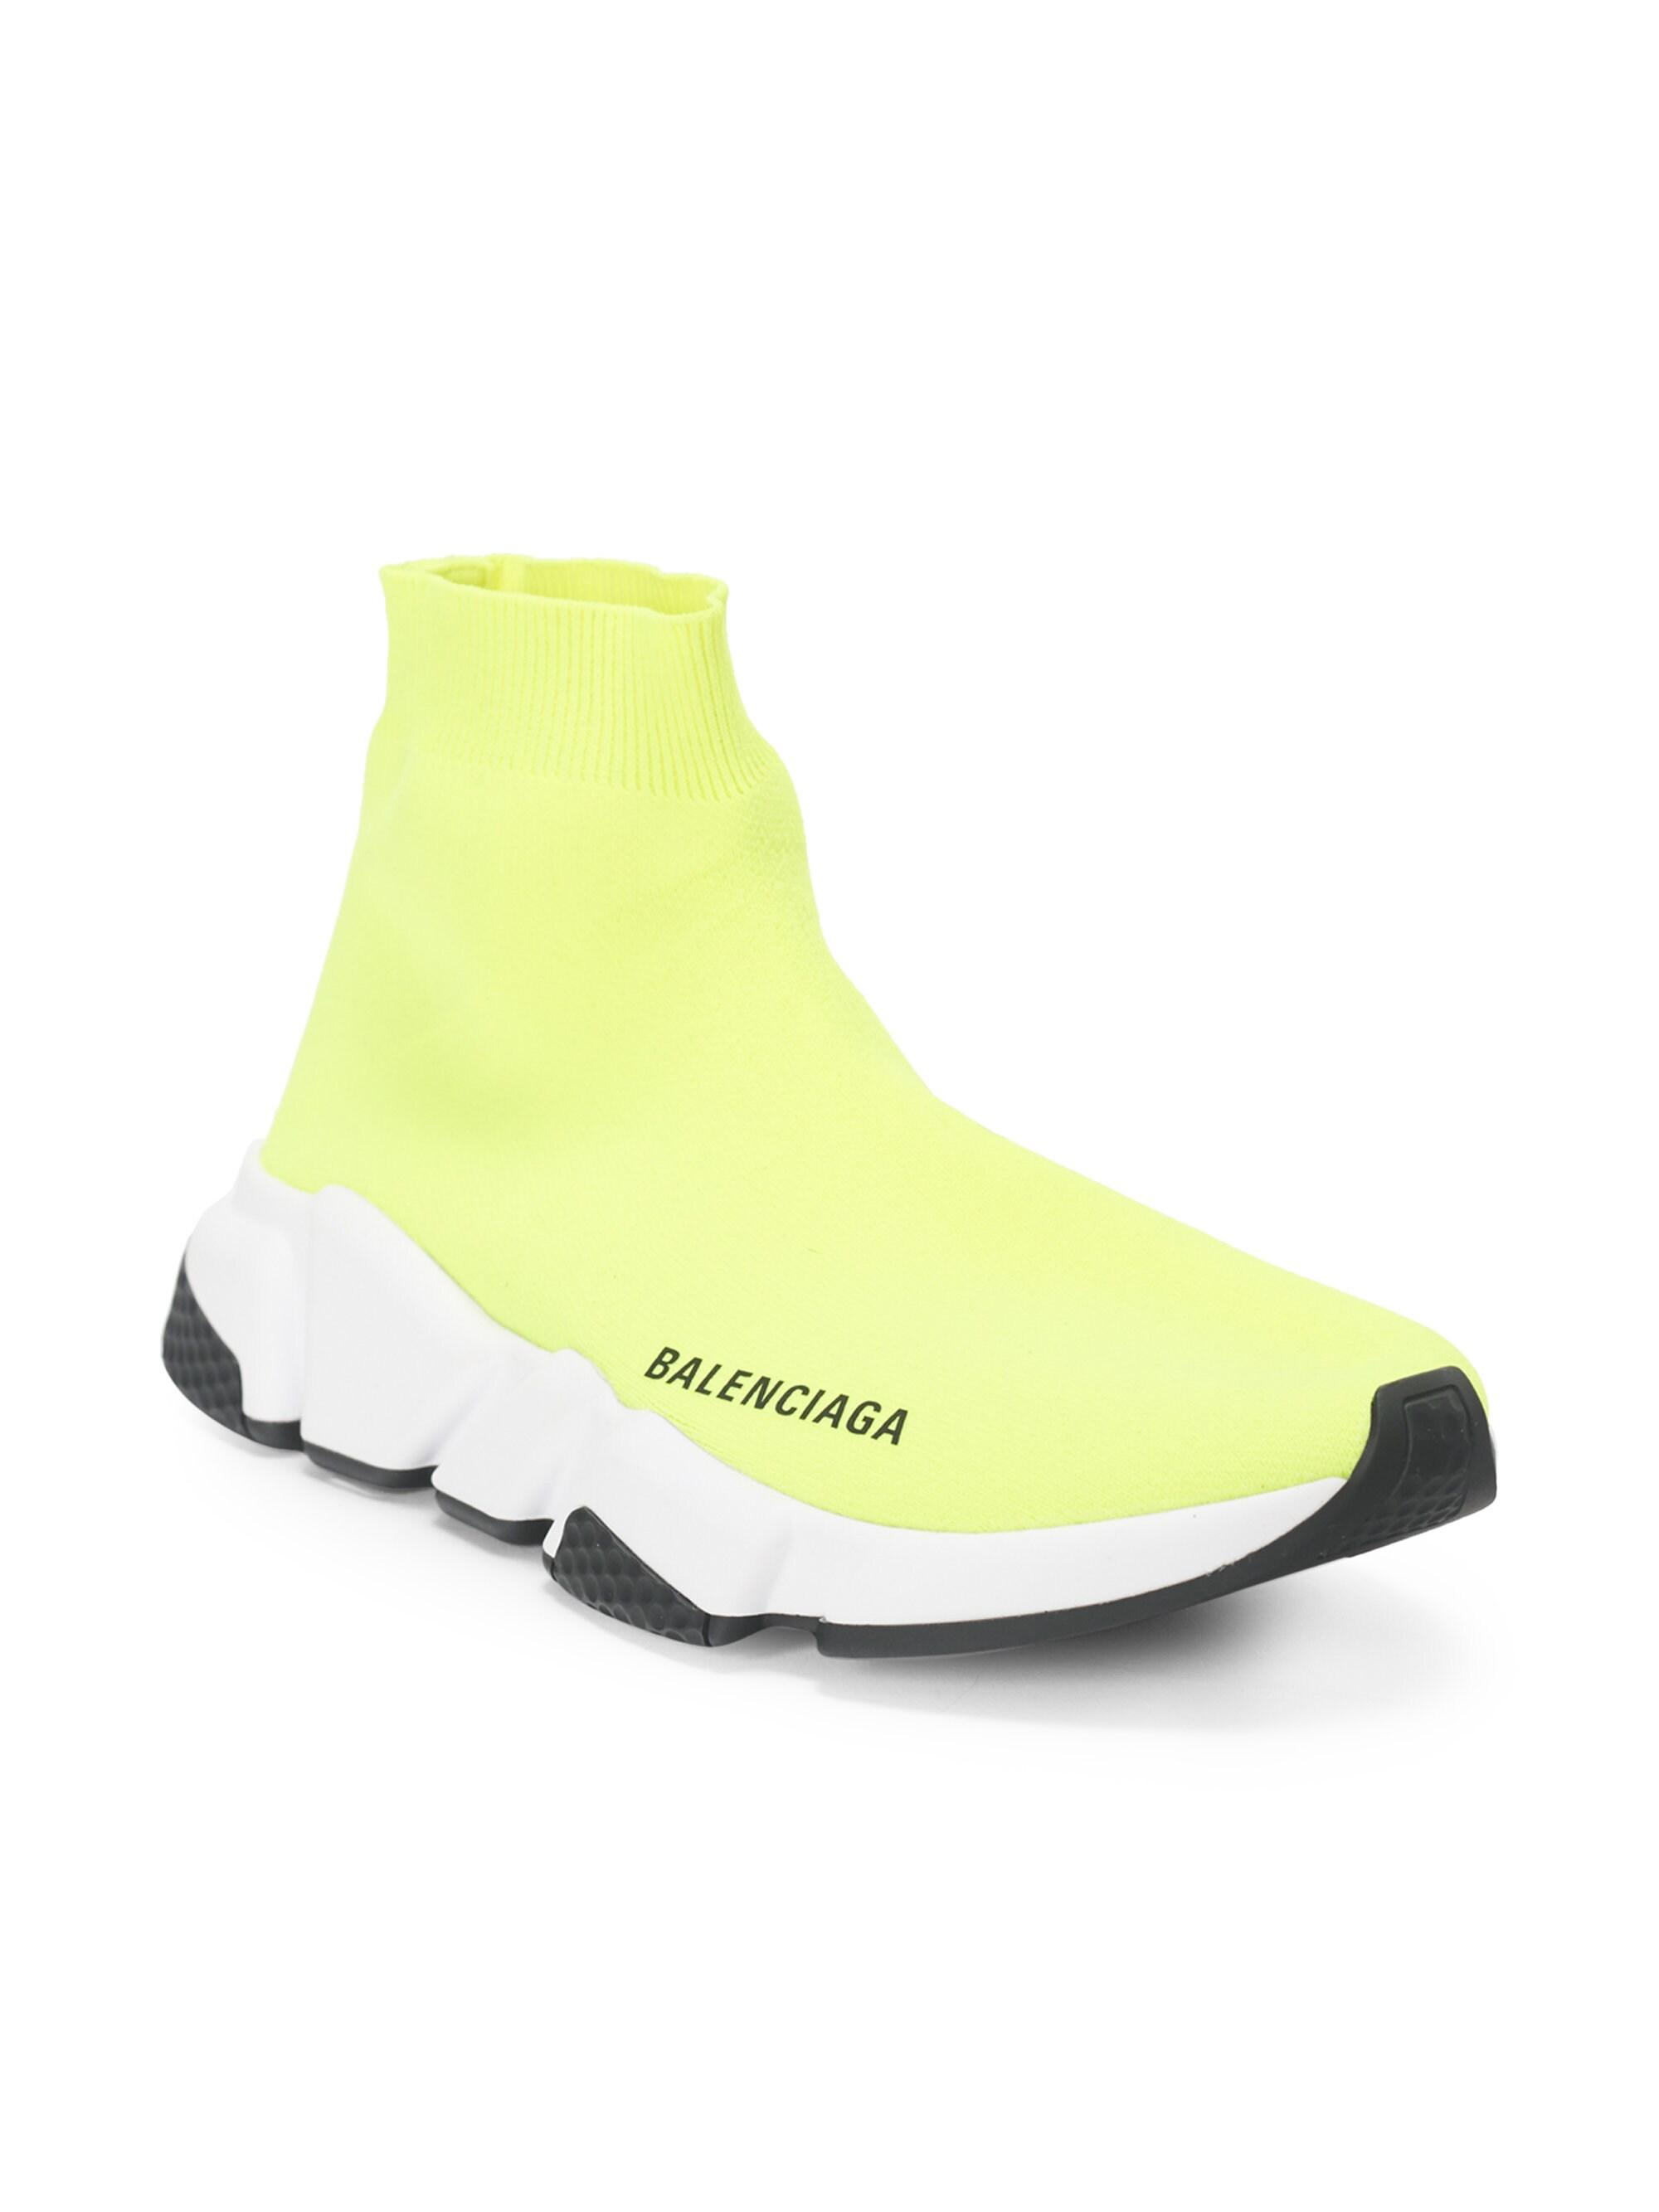 c2009cc7b Balenciaga Men's Speed Trainer Sock Sneakers - Noir in Yellow for ...